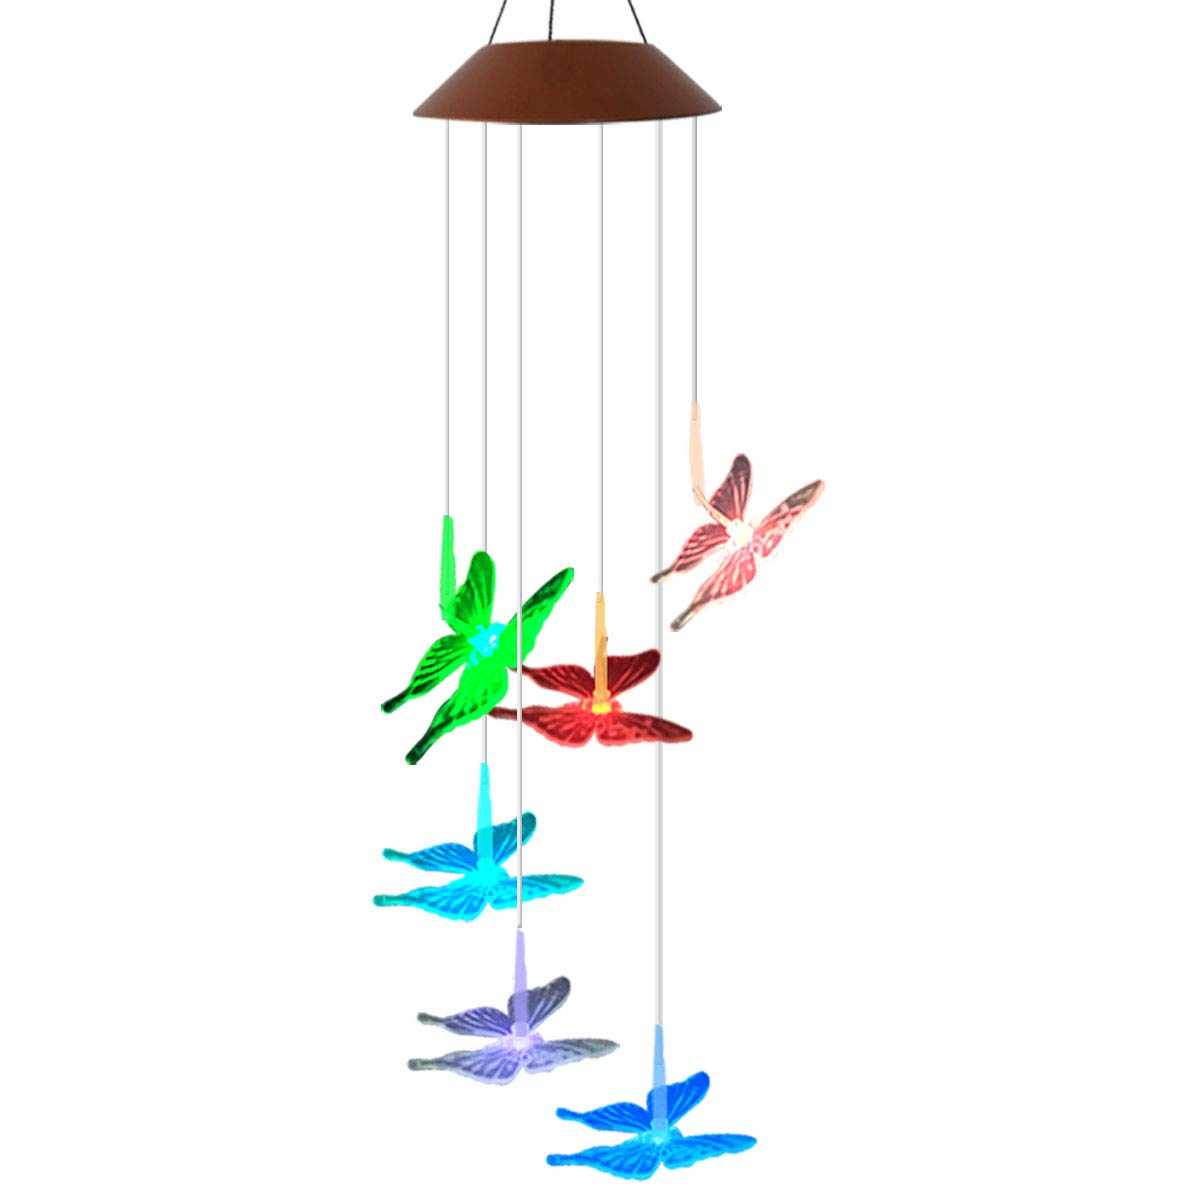 LED Solar Wind Chime - Outdoor Waterproof Solar Powered LED Changing Light Color Mobile Six Butterfly Wind Chimes For Home,Party,Festival Decor,Valentines Gift,Night Garden Decoration (Butterfly) Youyuan